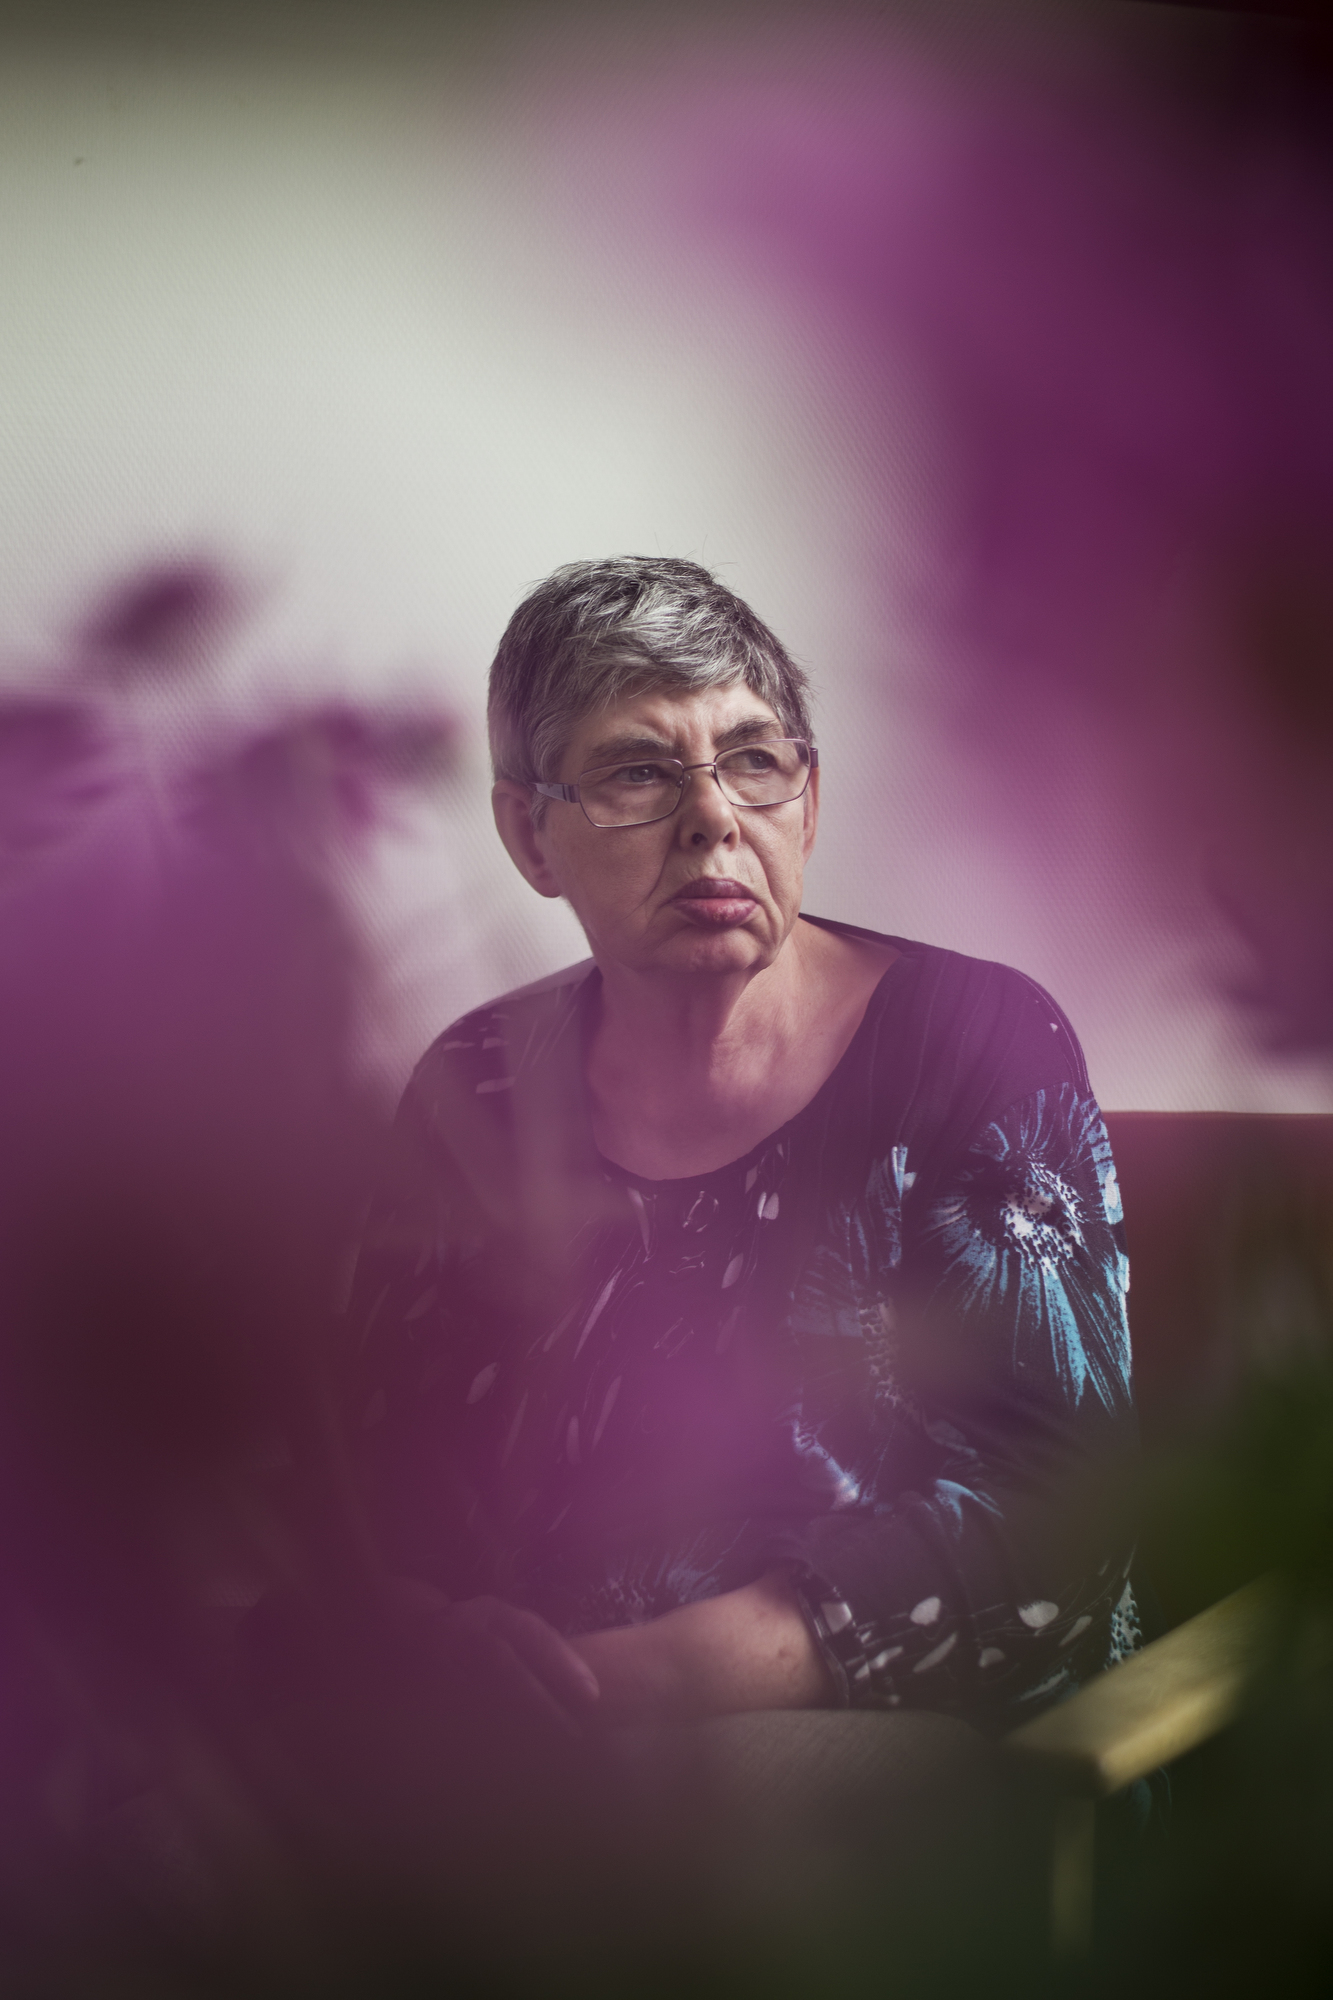 While others watch television, Anna Rosa Jacobsen sits by a window to watch the rain in her housing unit at Sølund, a mental institution, in Skanderborg, Denmark.At the age of 66, she has spent over 62 years in institutions for the mentally handicapped, moving to Sølund in 1988.